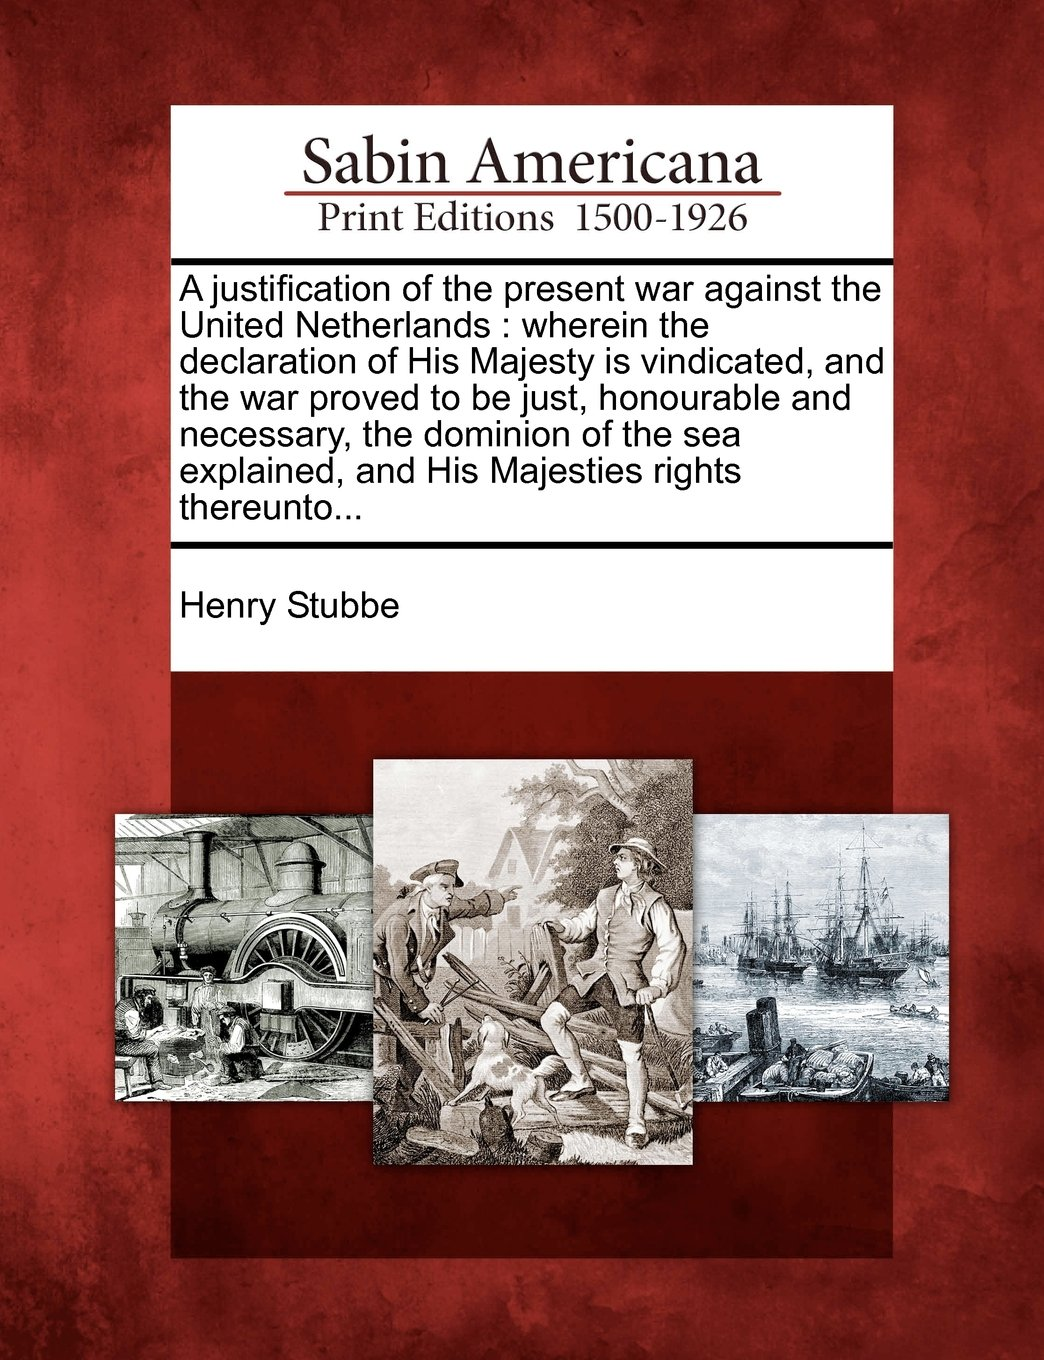 Download A justification of the present war against the United Netherlands: wherein the declaration of His Majesty is vindicated, and the war proved to be ... and His Majesties rights thereunto... pdf